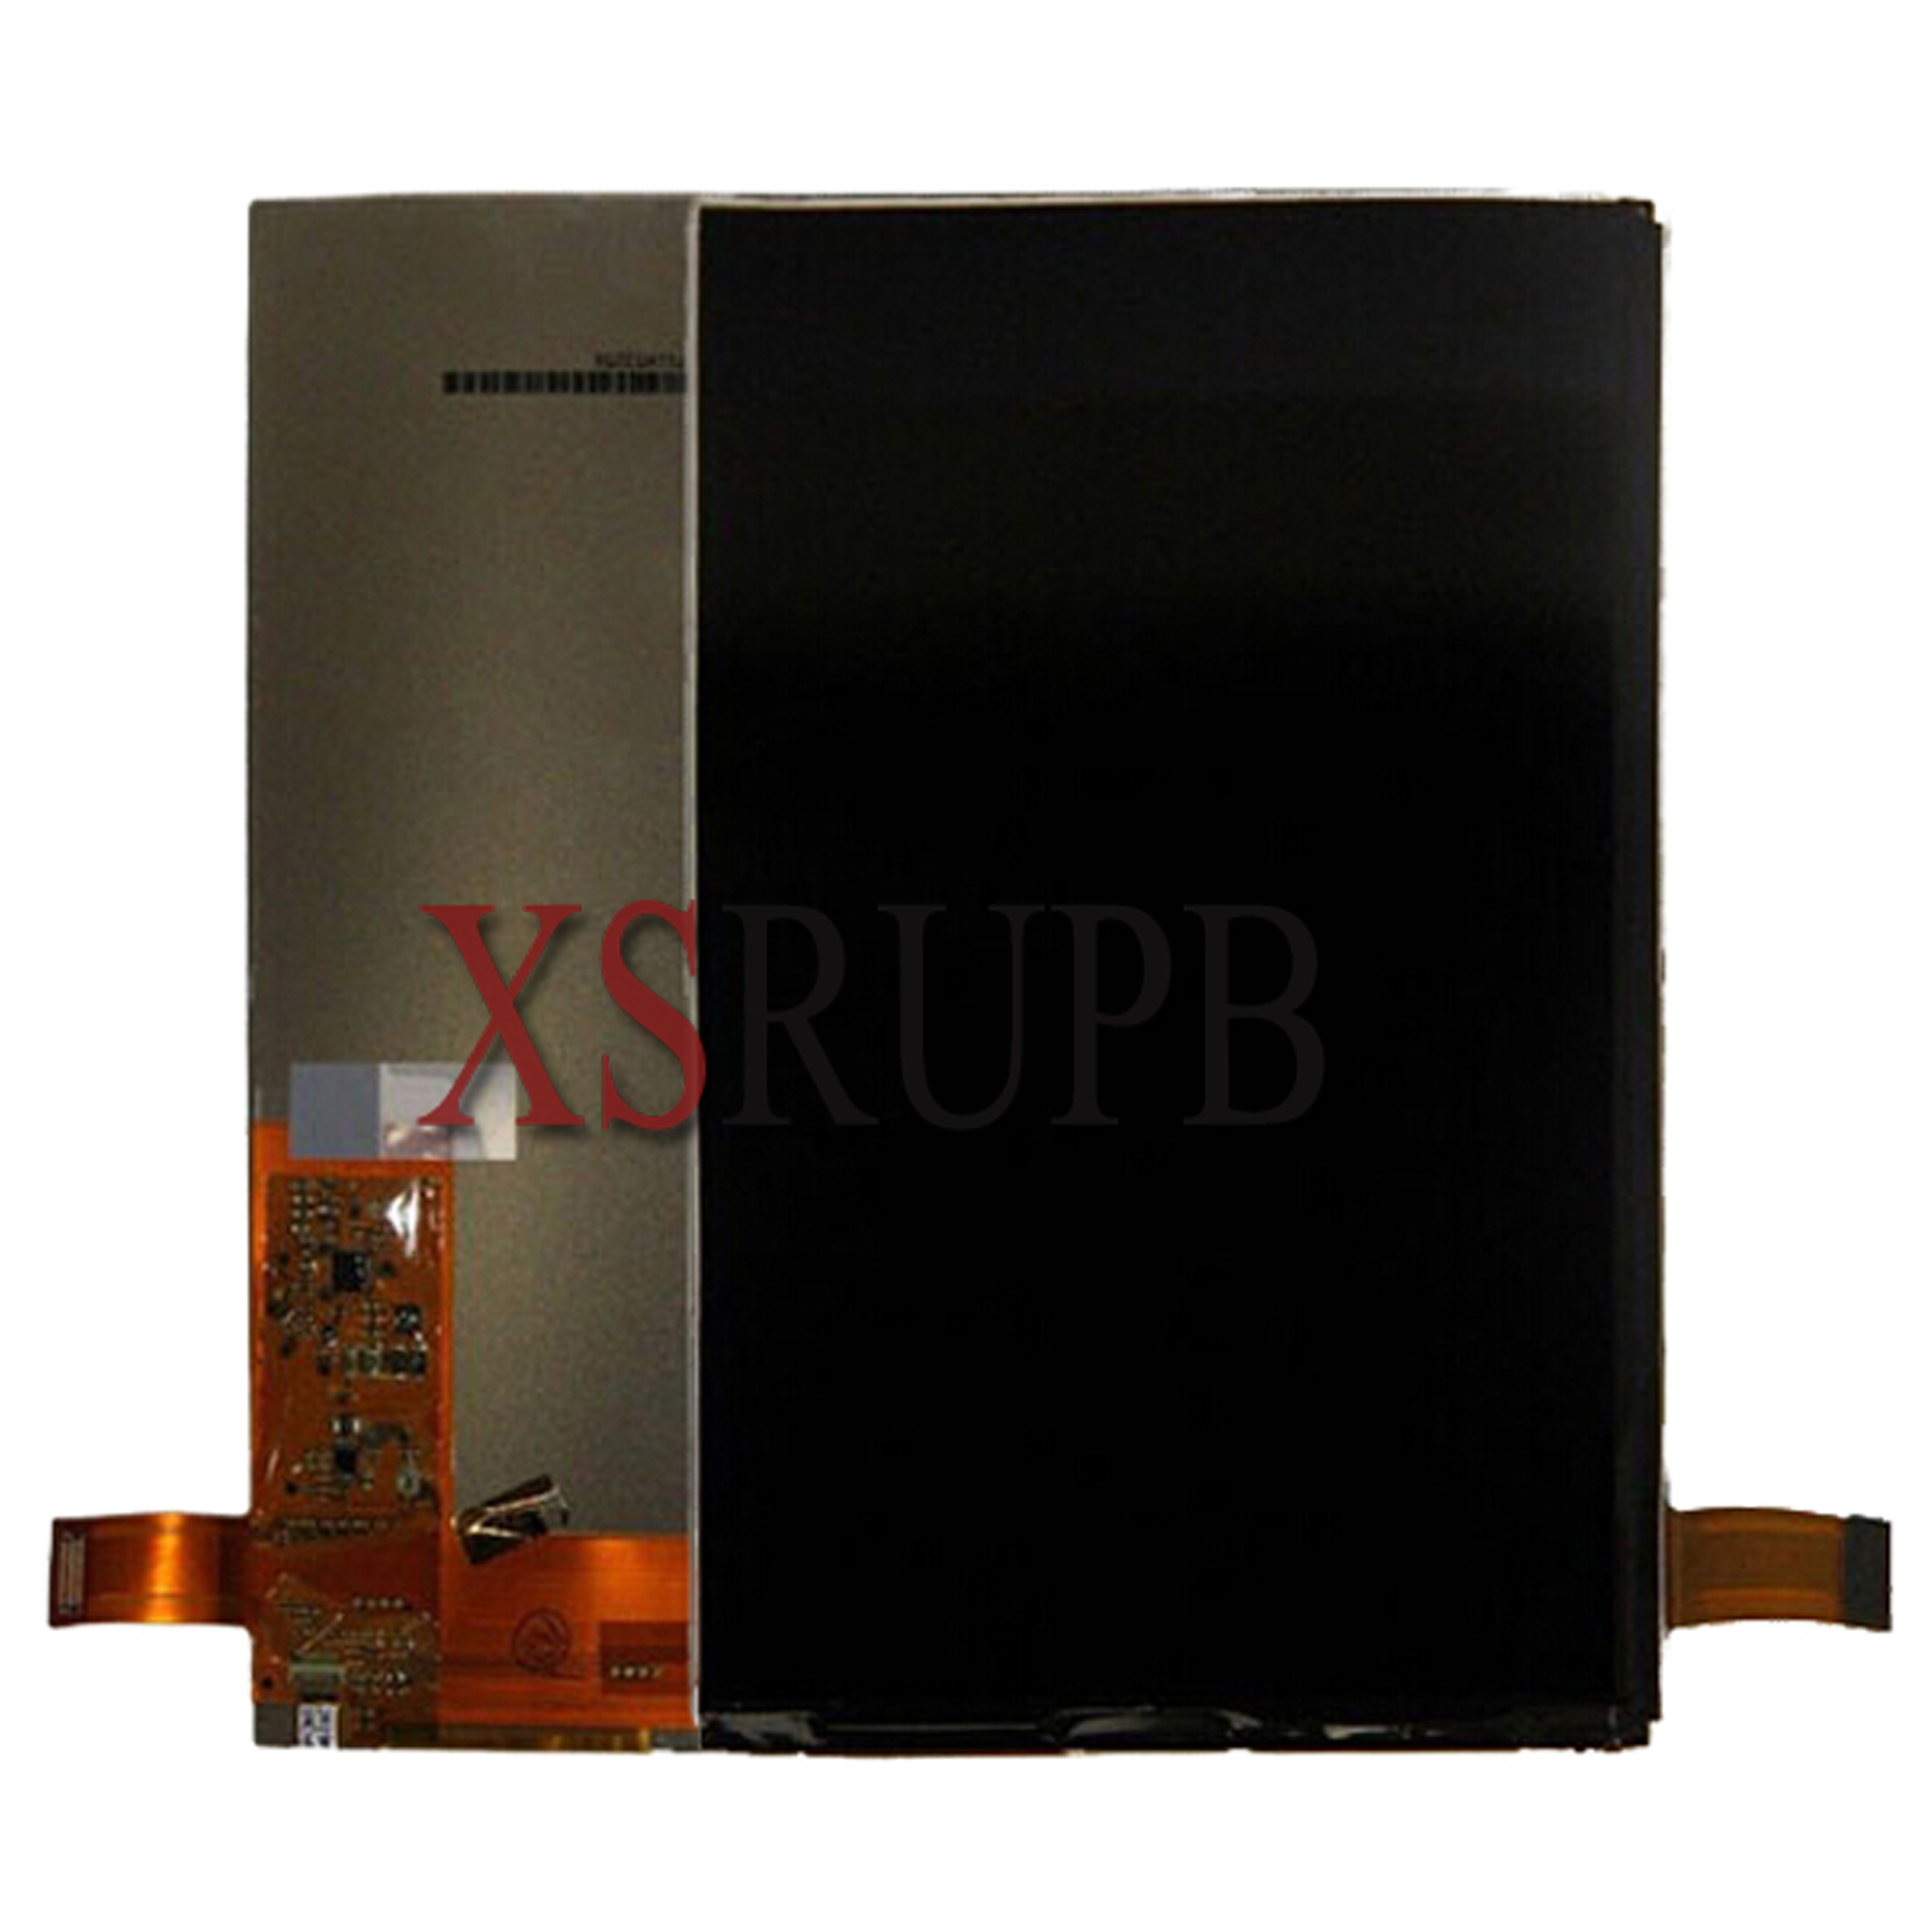 New LCD Display Matrix 7 inch Prestigio MultiPad PMT3777 3G TABLET LCD Screen replacement Free Shipping new 7 inch replacement lcd display screen for oysters t72ms 3g 1024 600 tablet pc free shipping